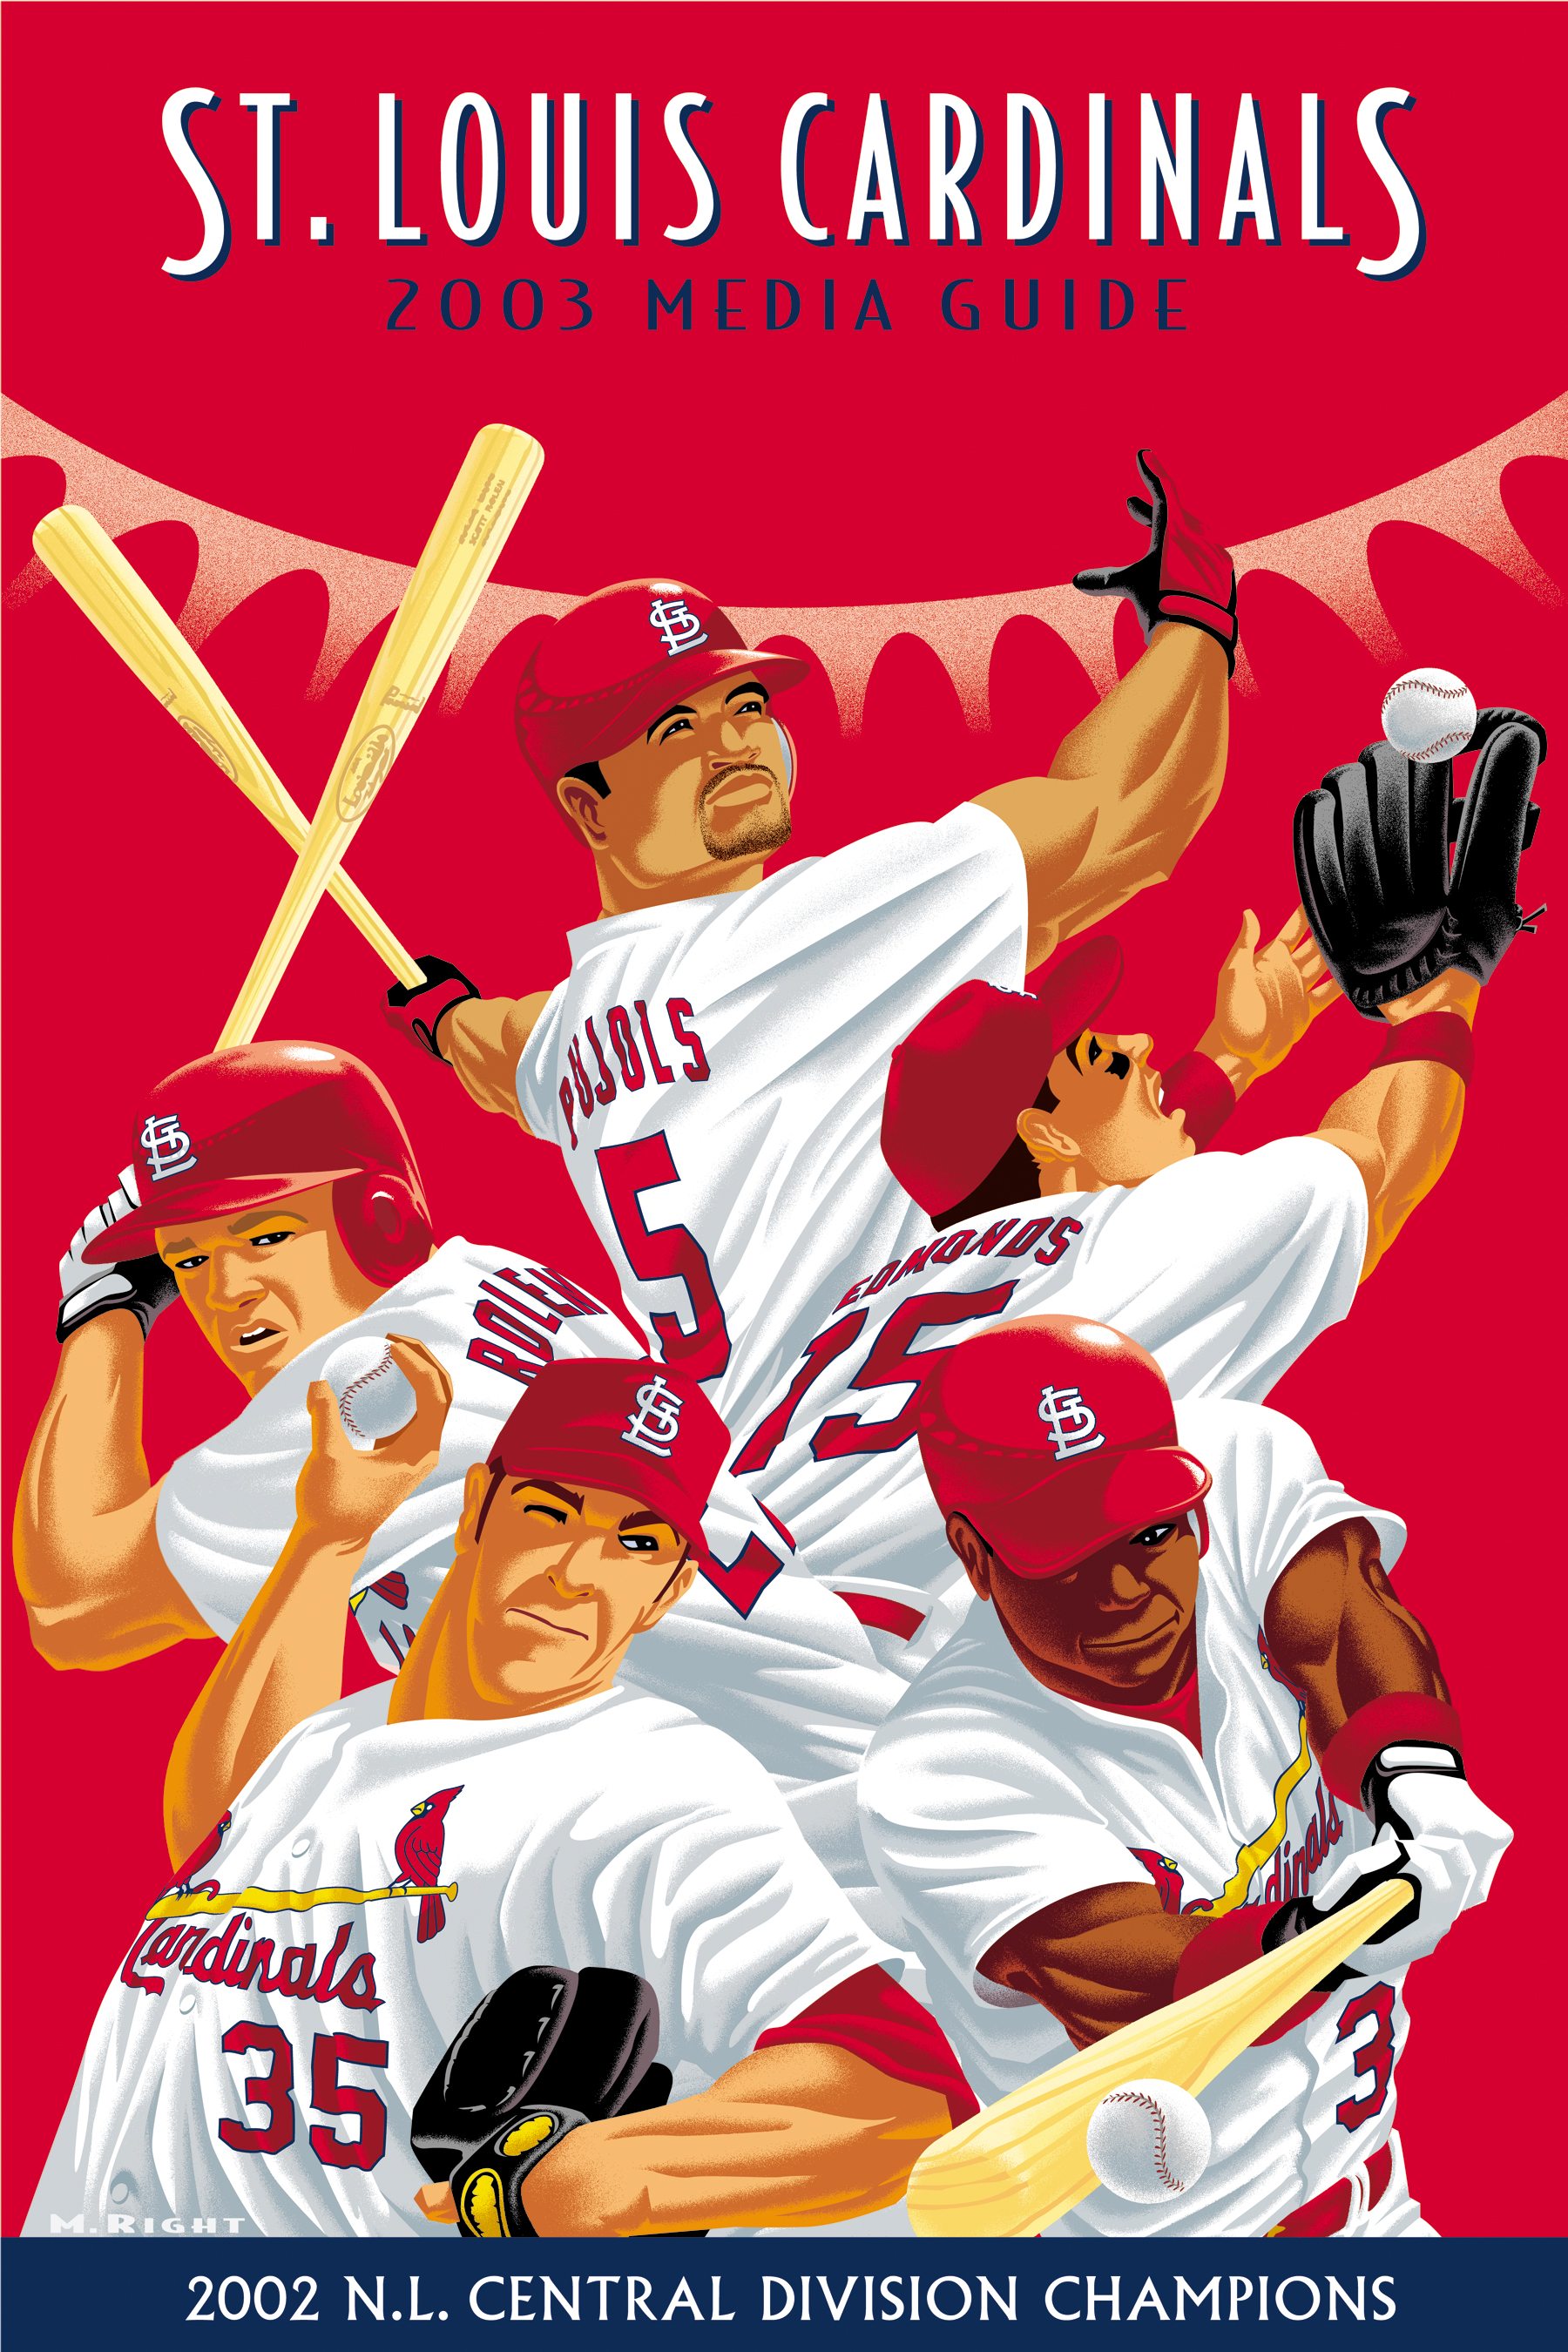 Cardinals Media Guide Cover Art